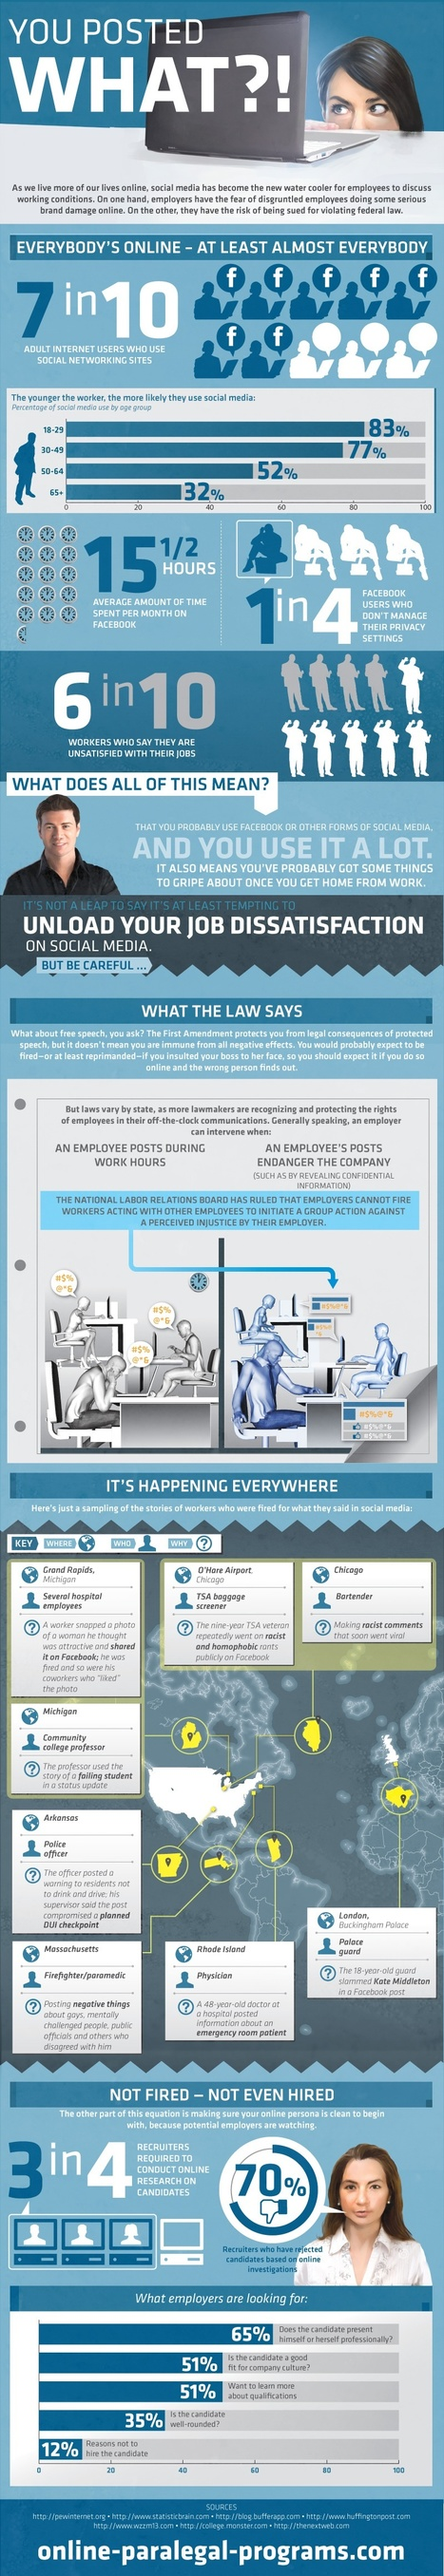 Think HR Isn't Monitoring Your Social Media? Think again #INFOGRAPHIC | Social Media | Scoop.it